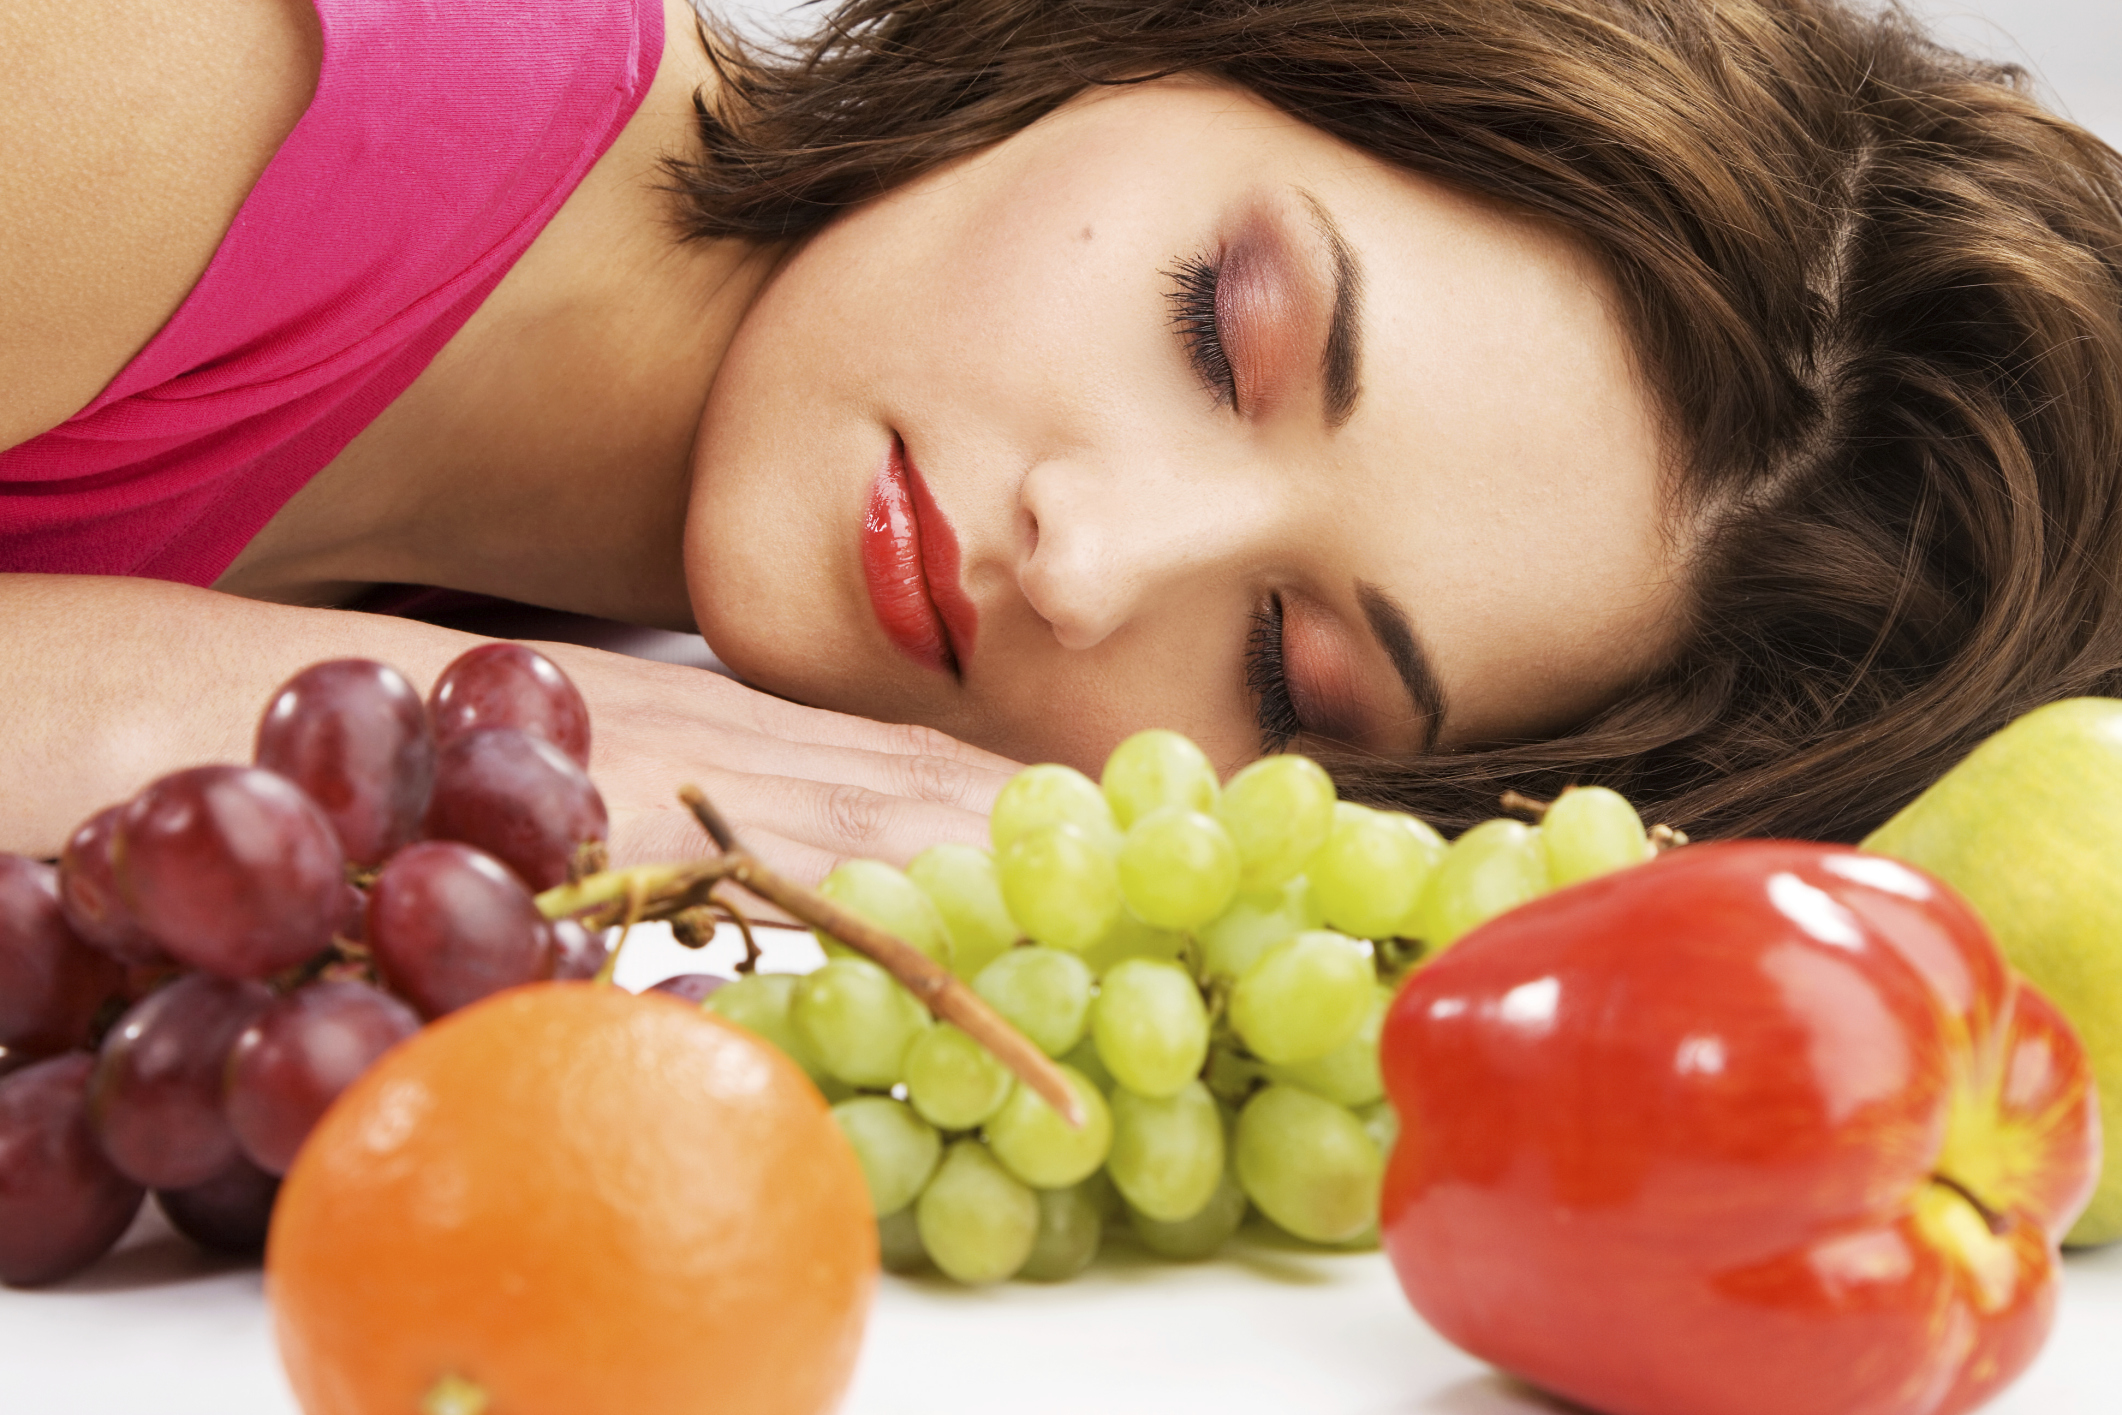 Does What You Eat Influence How You Sleep?